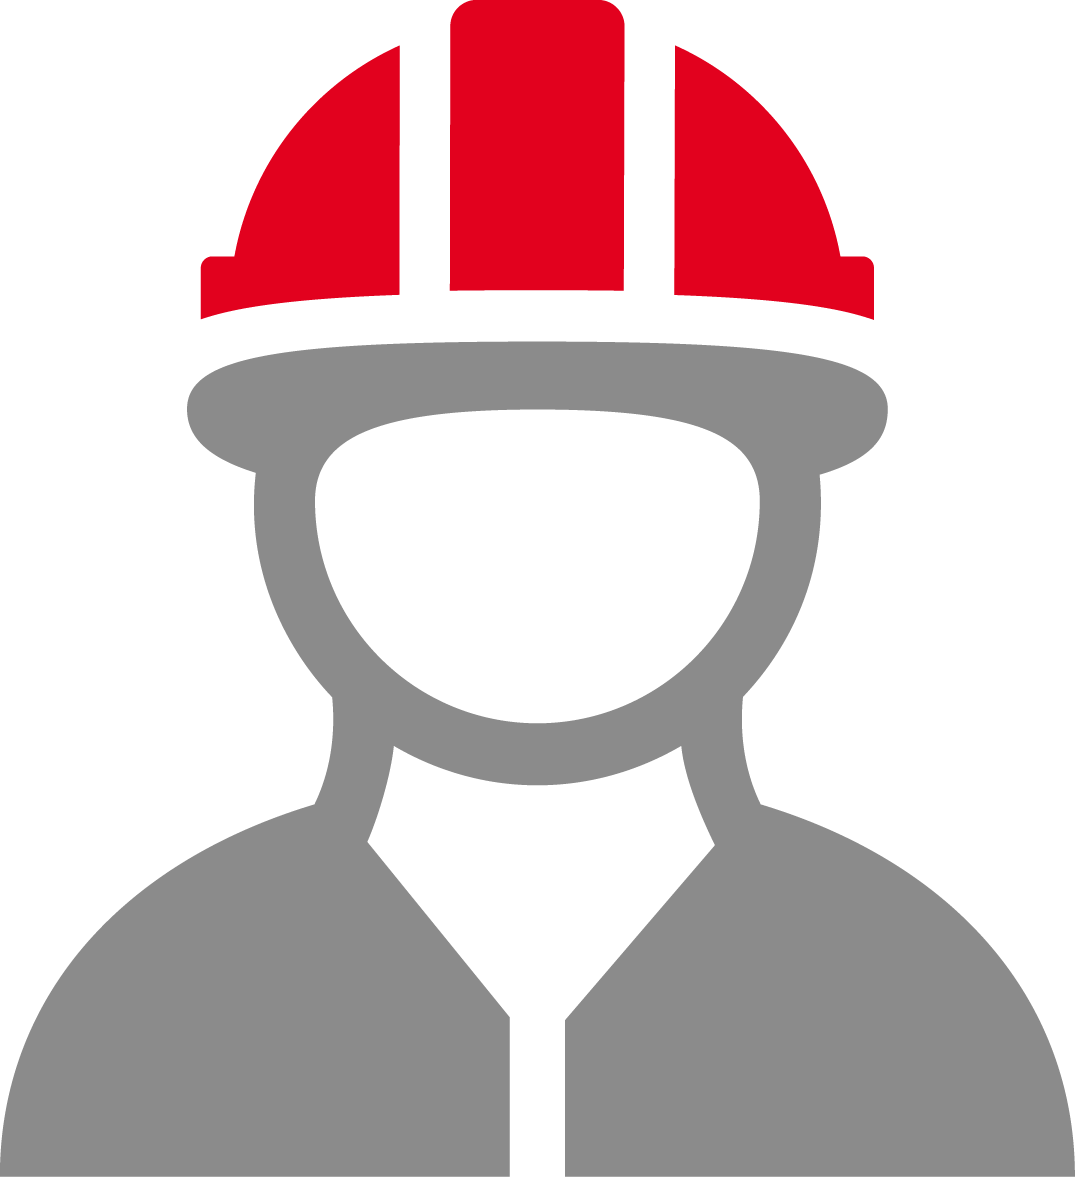 Human with helmet